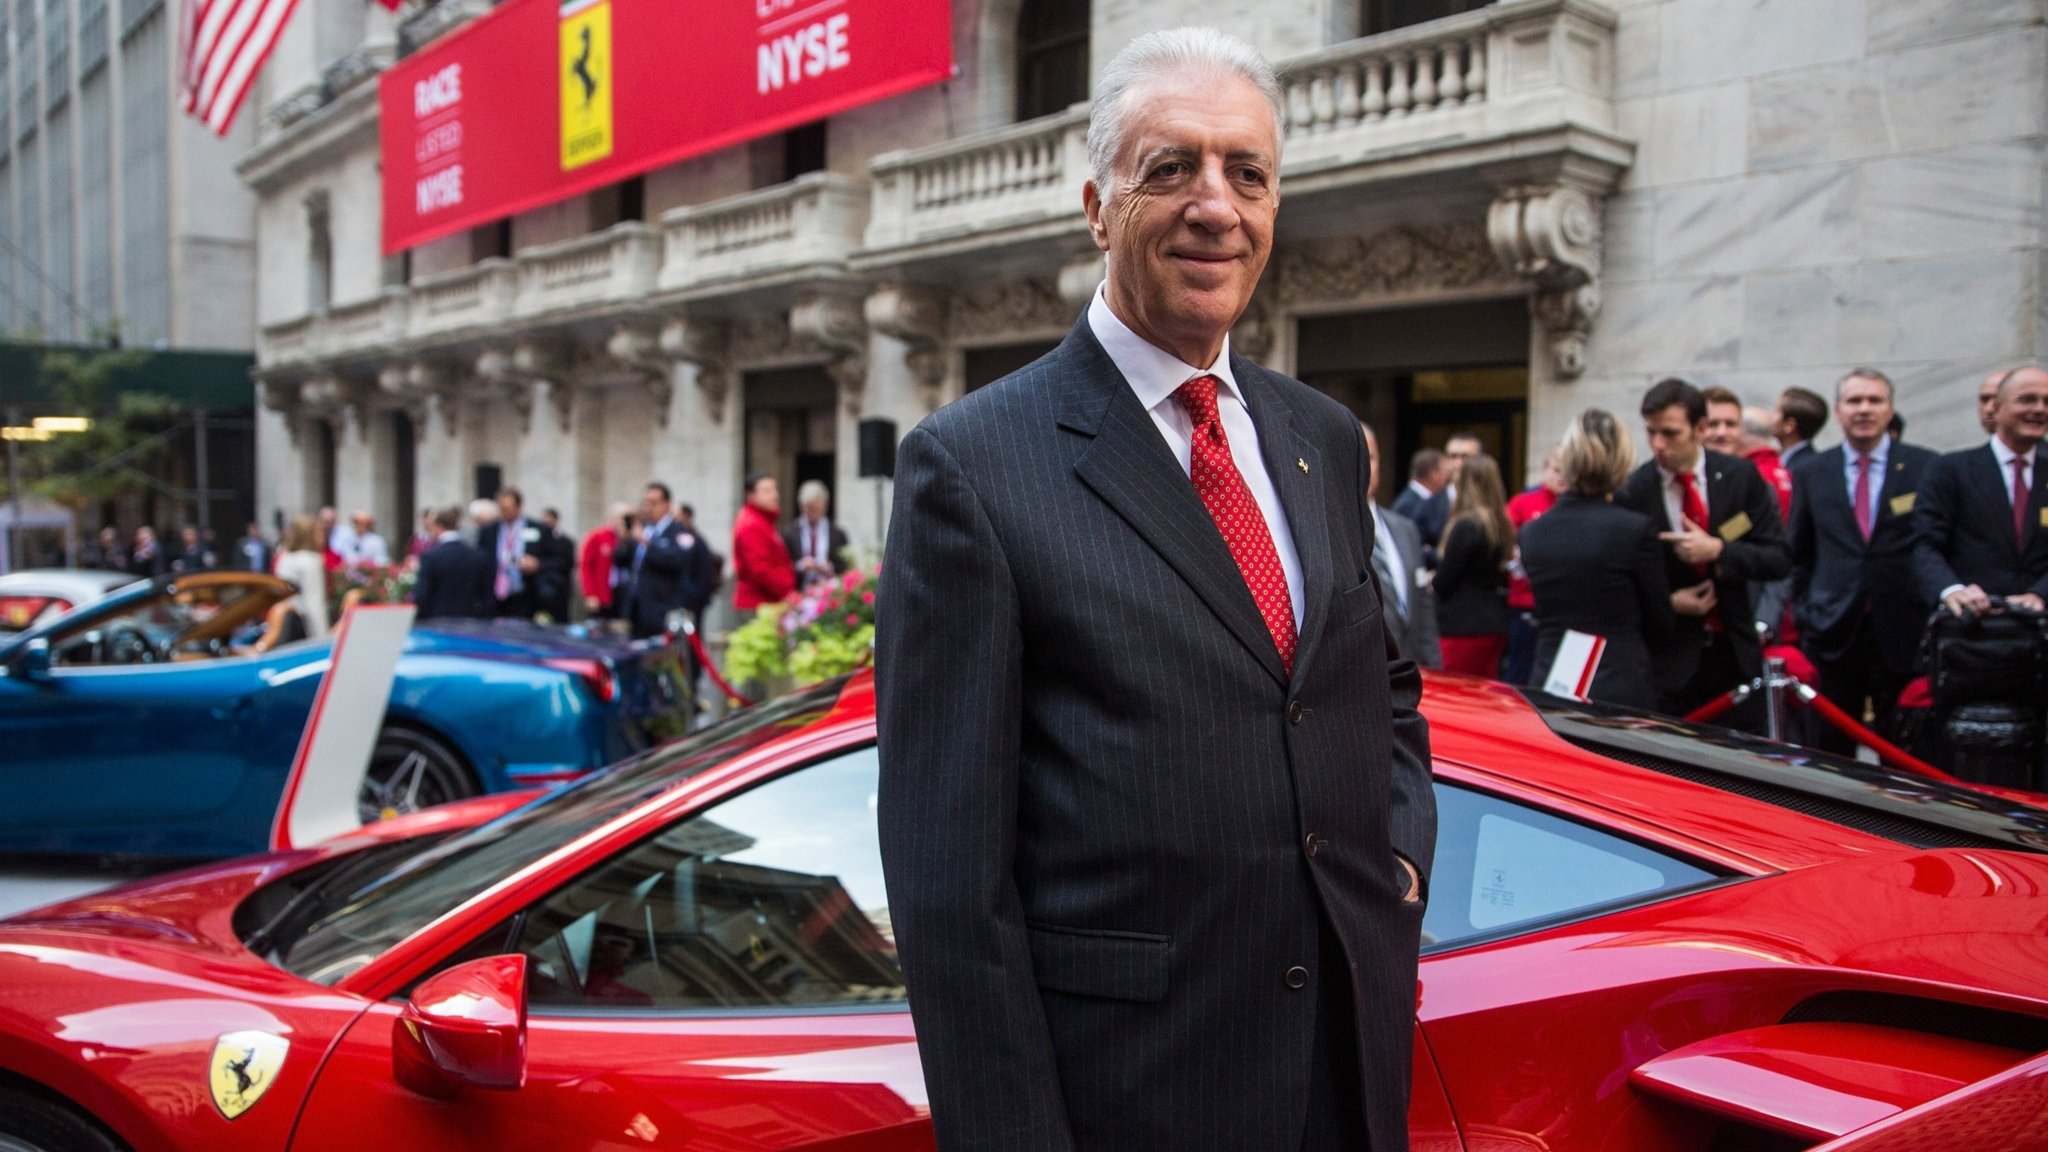 Sole Bearer Of The Ferrari Name Vows To Uphold Its Values Financial Times